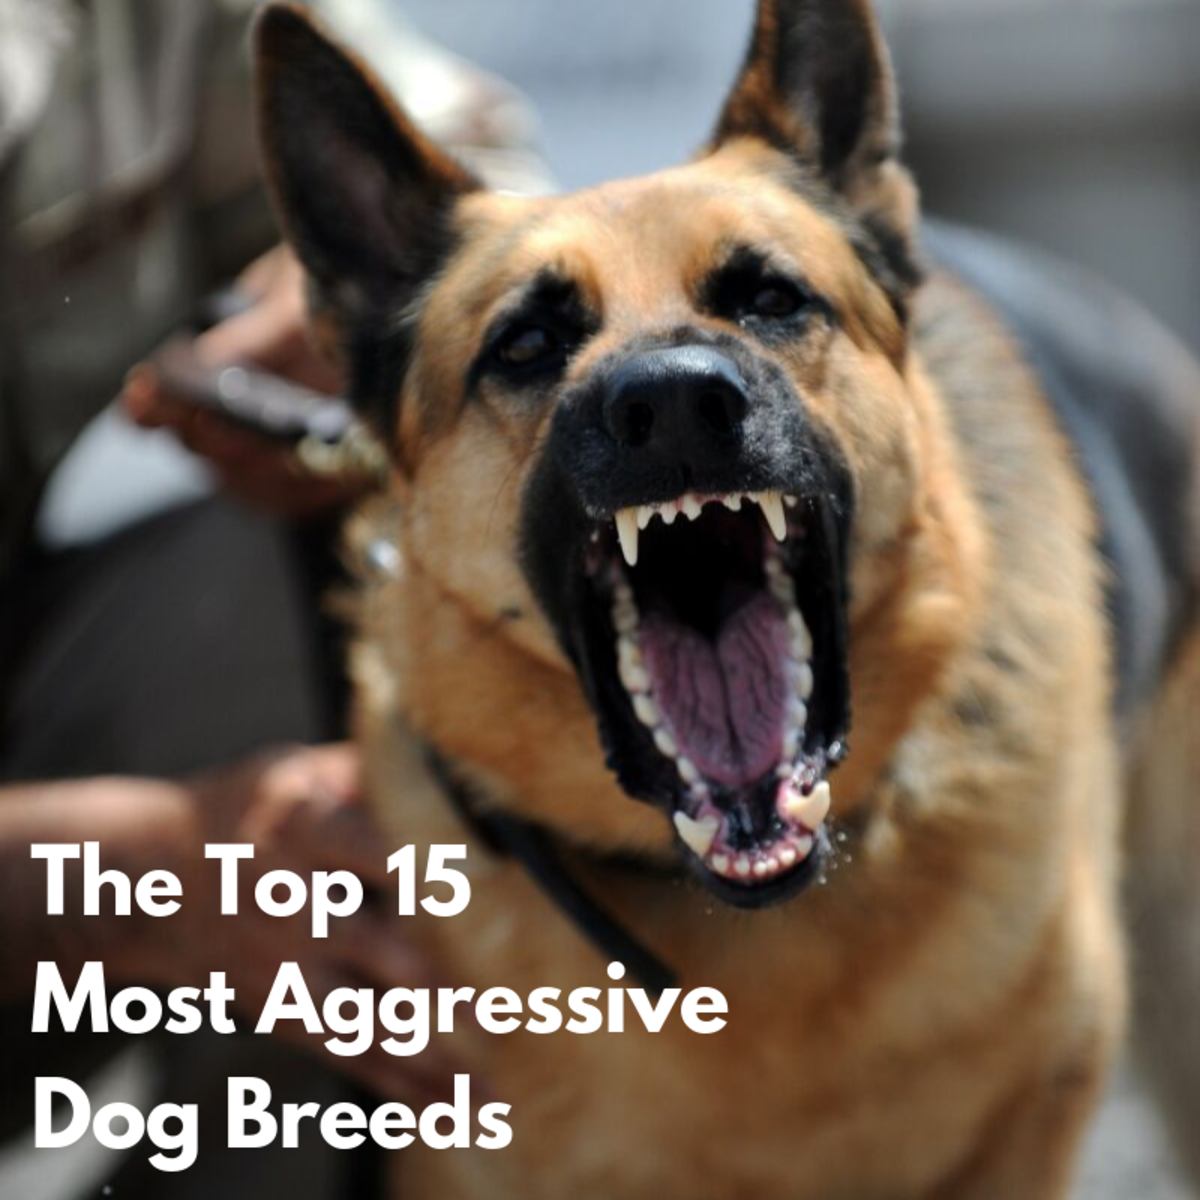 The World's Most Aggressive Dog Breeds